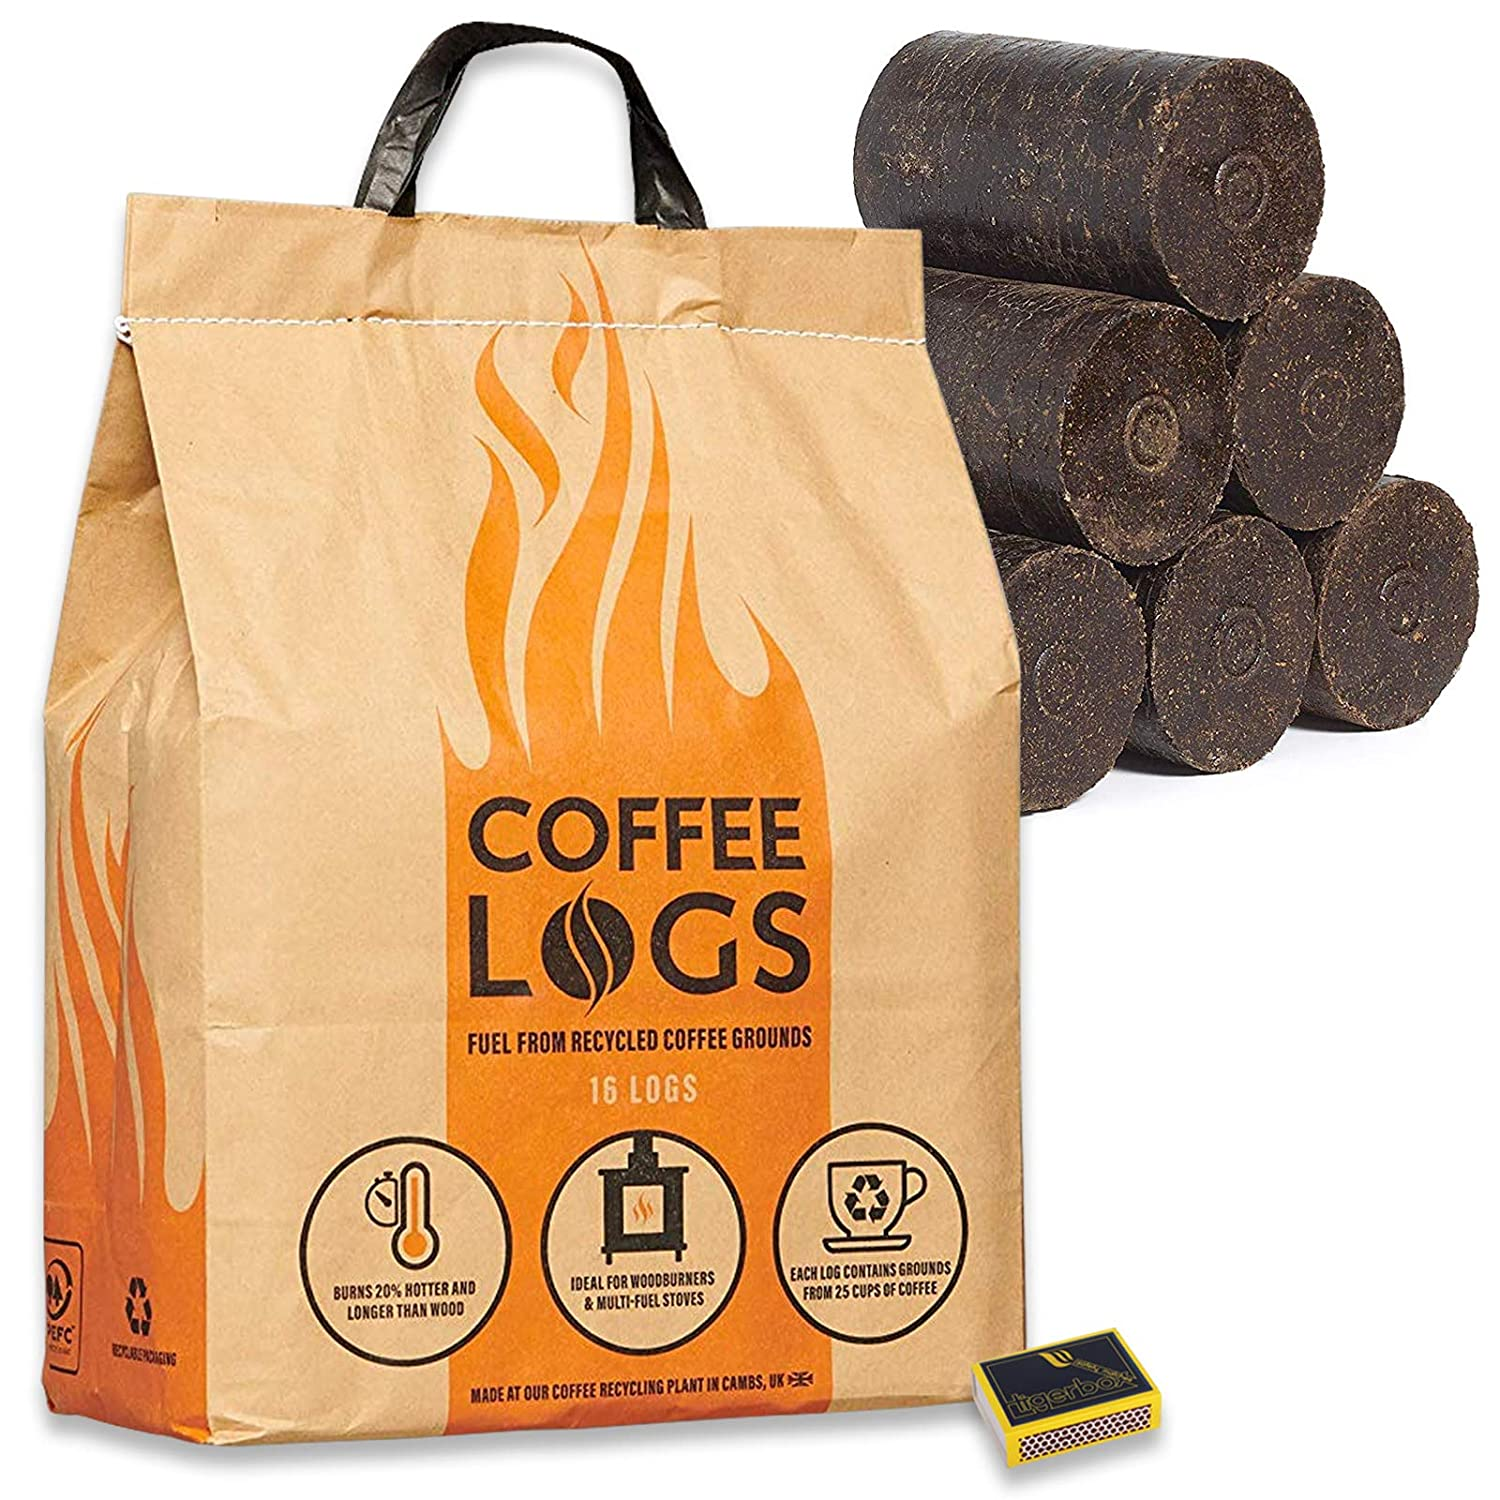 16 Coffee Logs & Tigerbox Safety Matches. Carbon Neutral Extra Hot Solid Fuel made from Recycled Coffee.